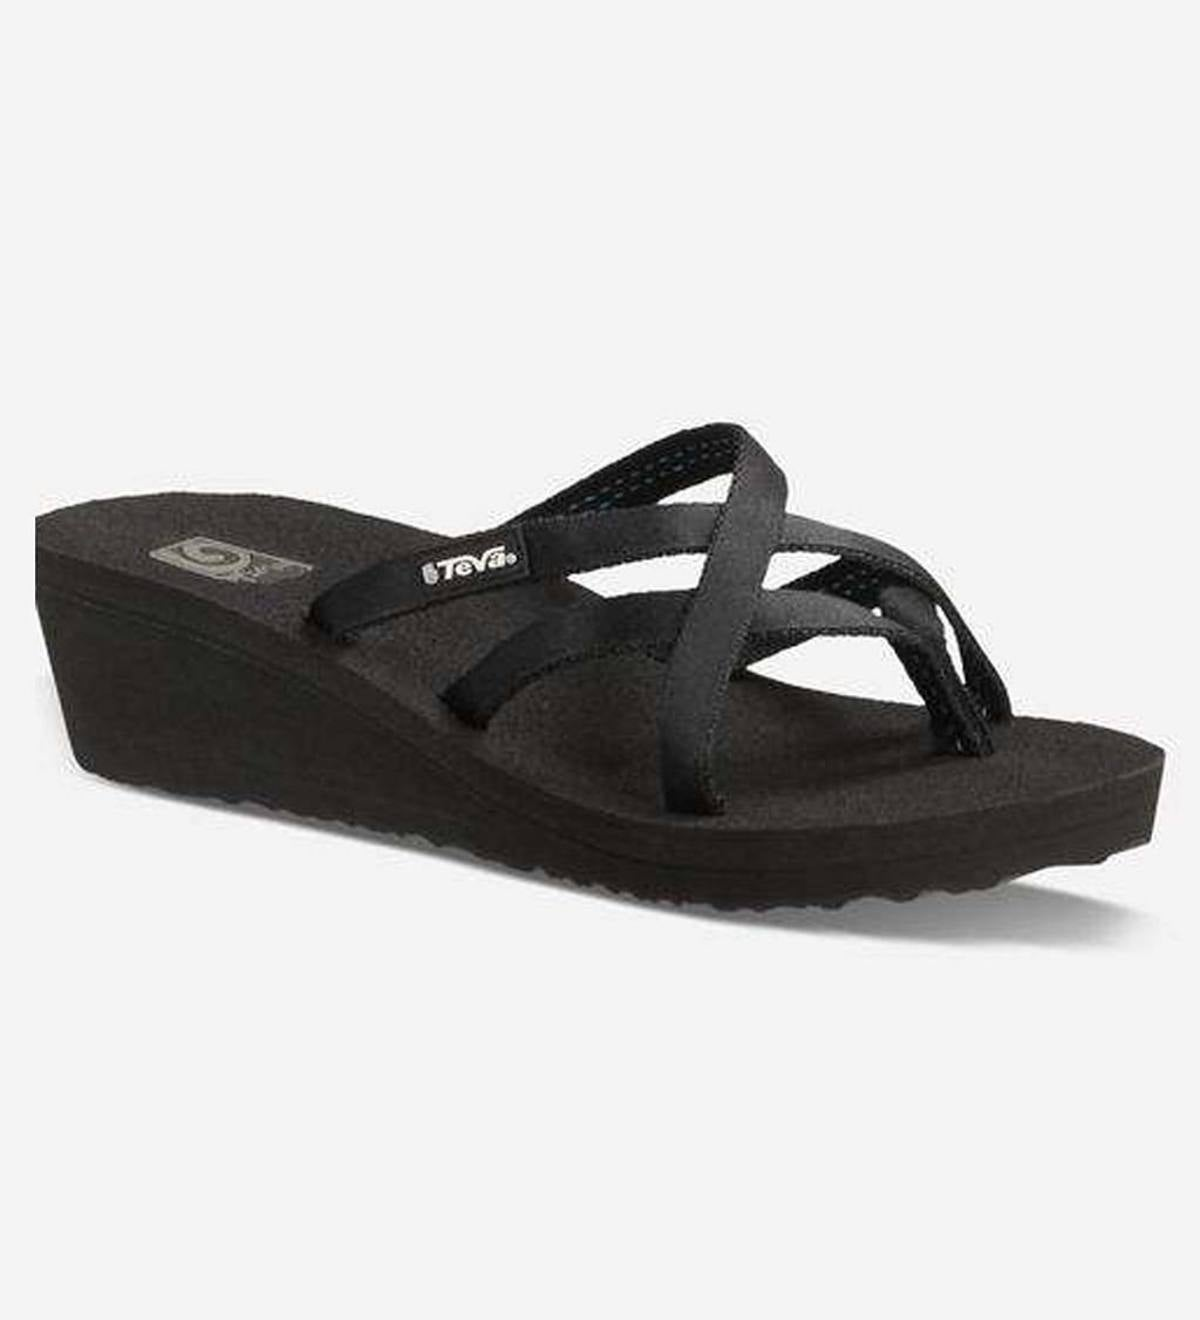 b4b97514a4470 Teva Womens Mush Mandalyn Wedge Ola 2 - Black - Size 11